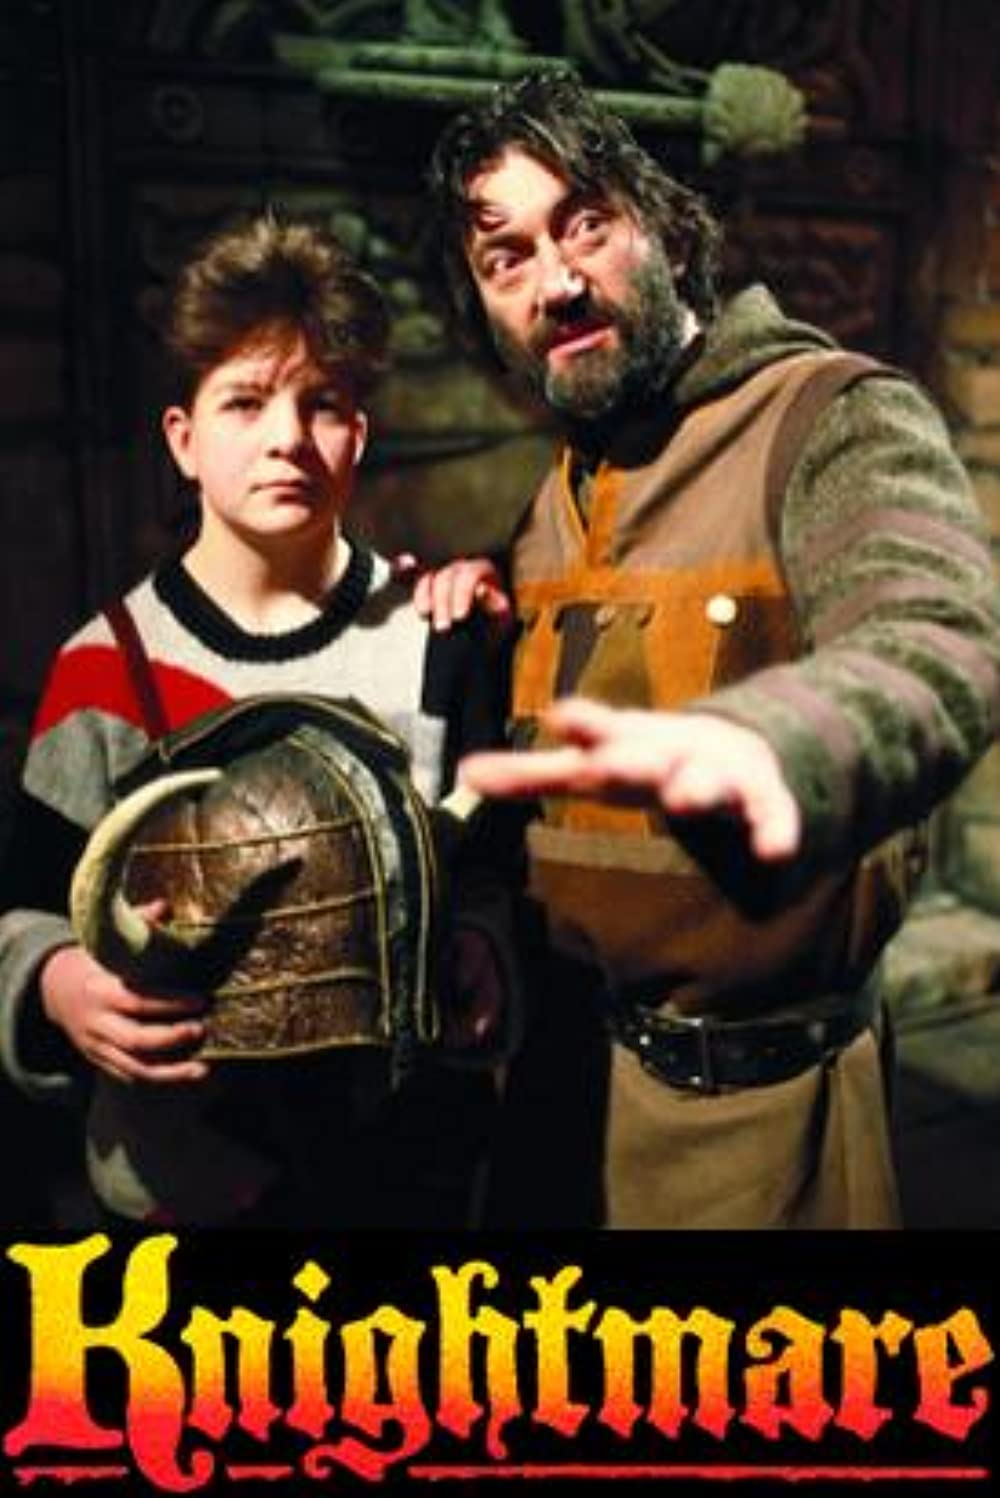 A poster for Knightmare, with a boy and his guide looking off in the distance.